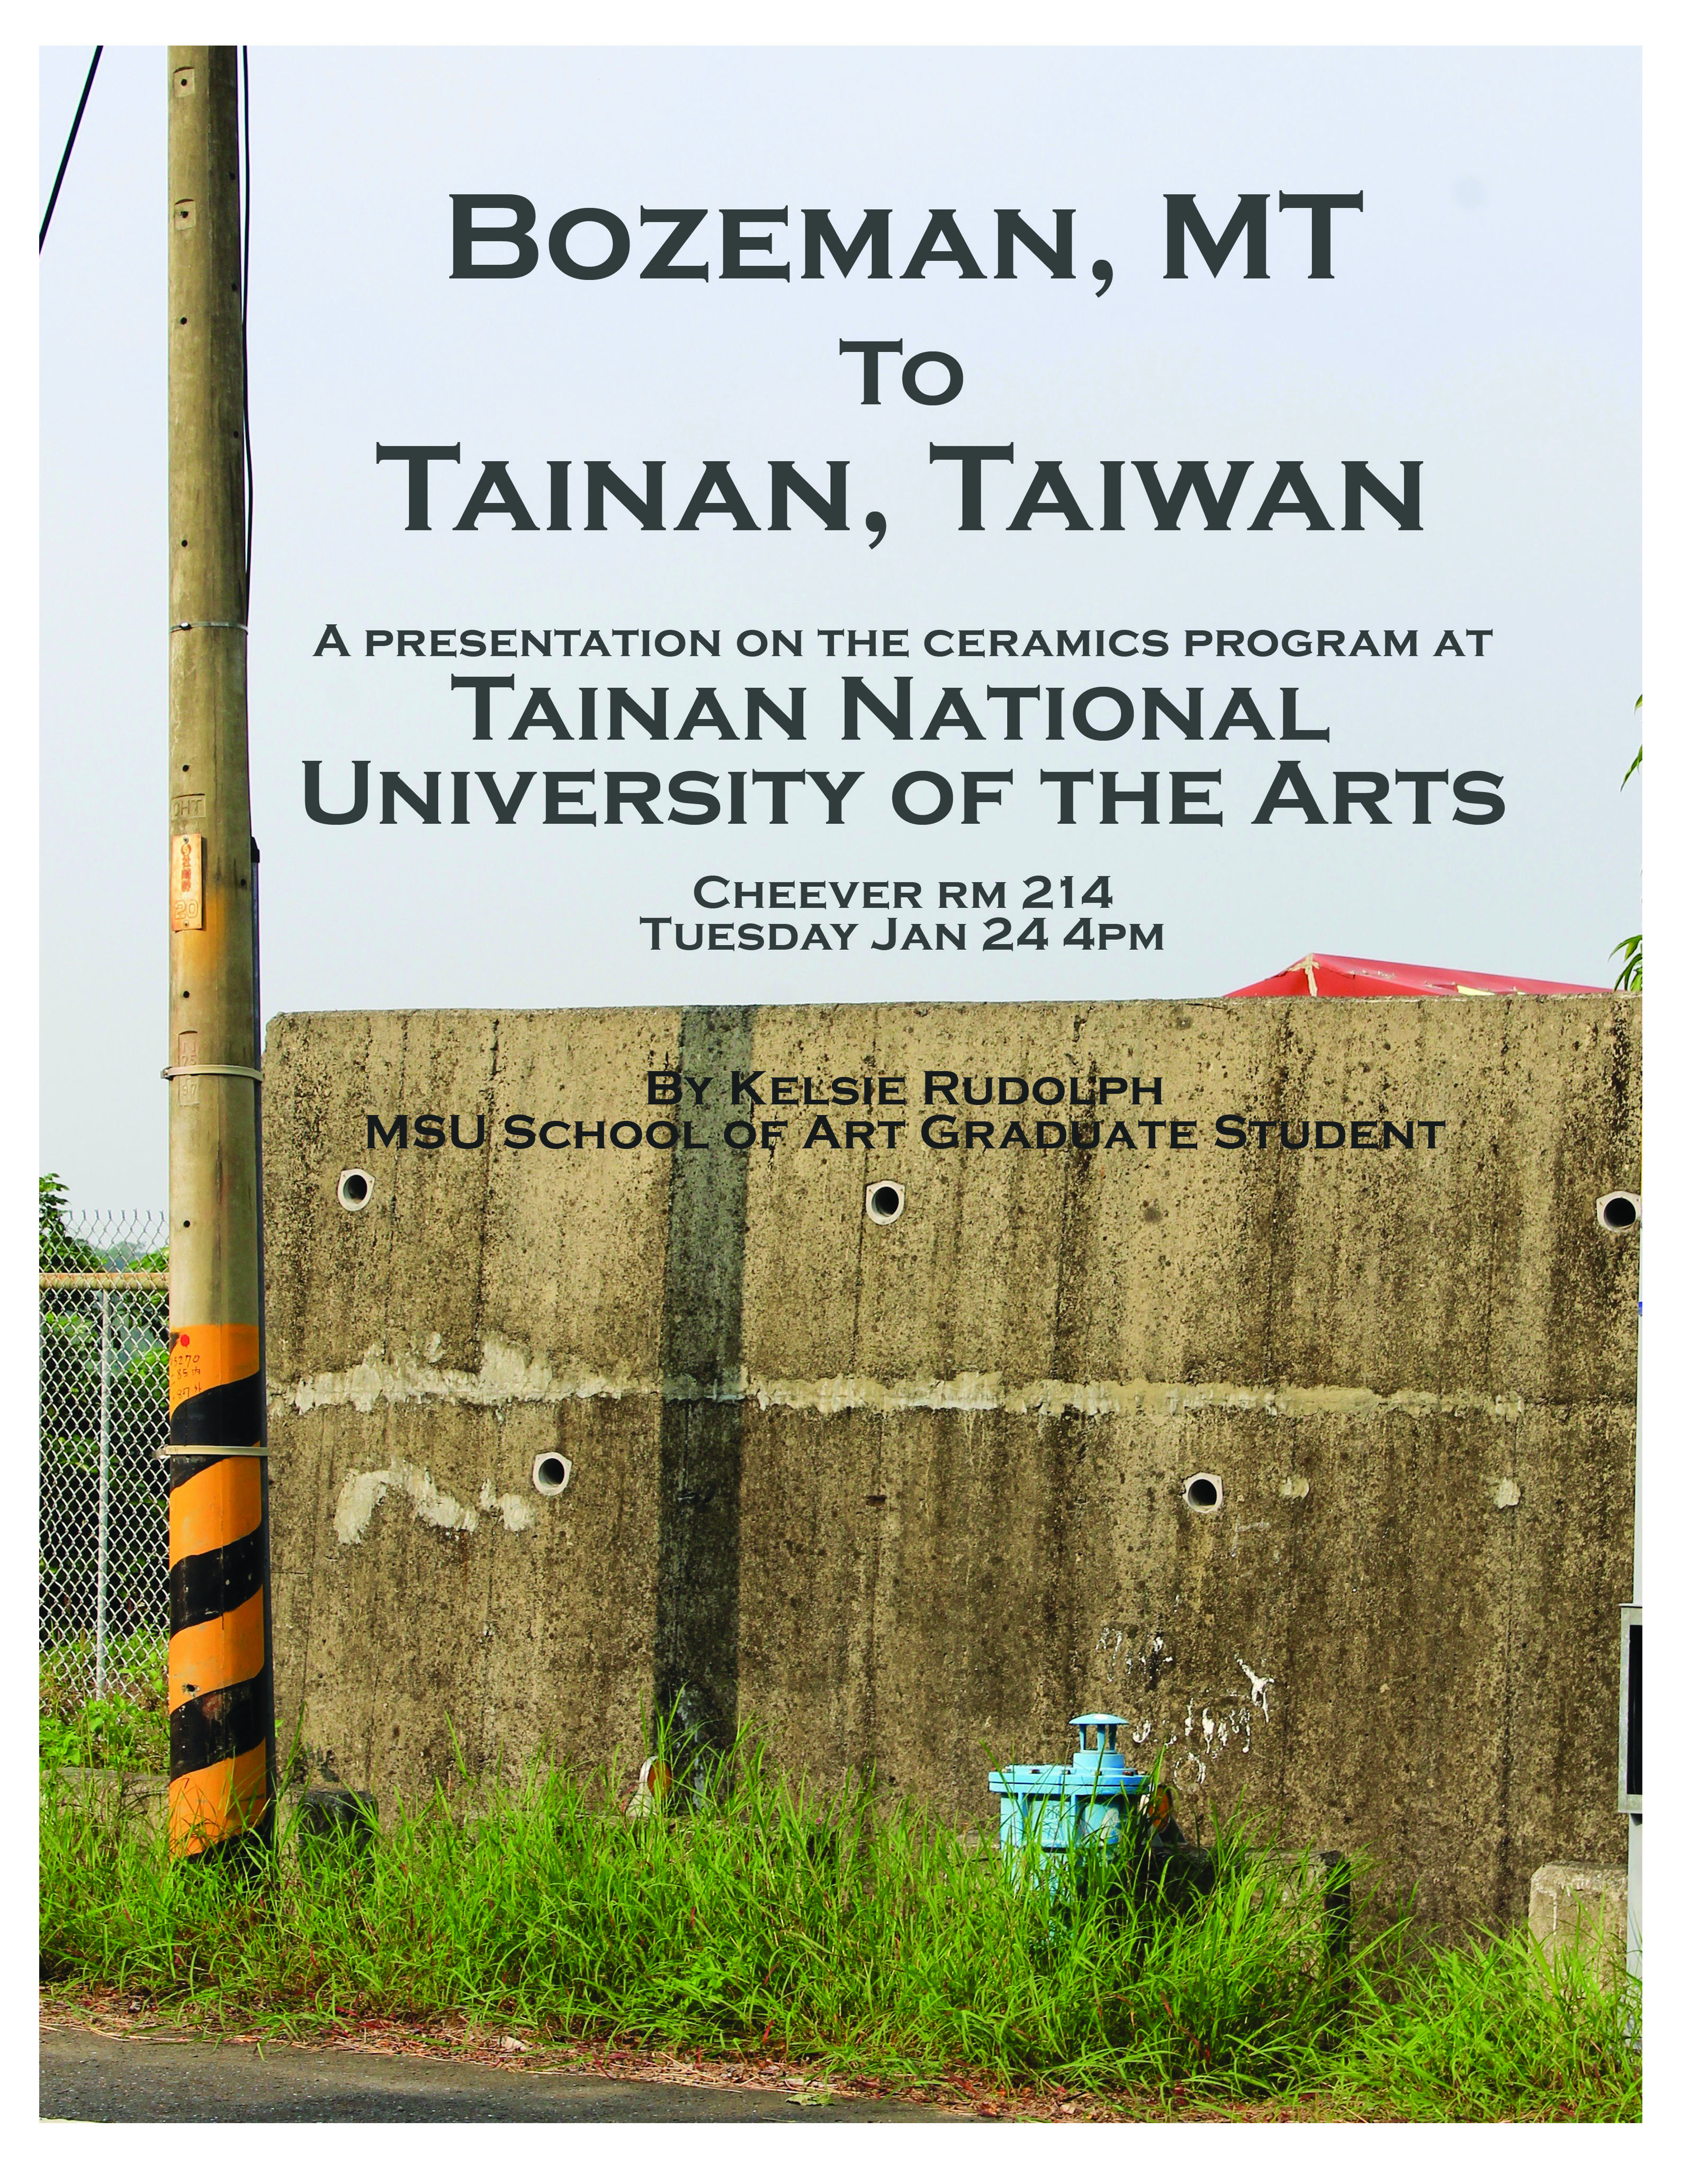 Kelsie Rudolph lecture onTaiwan